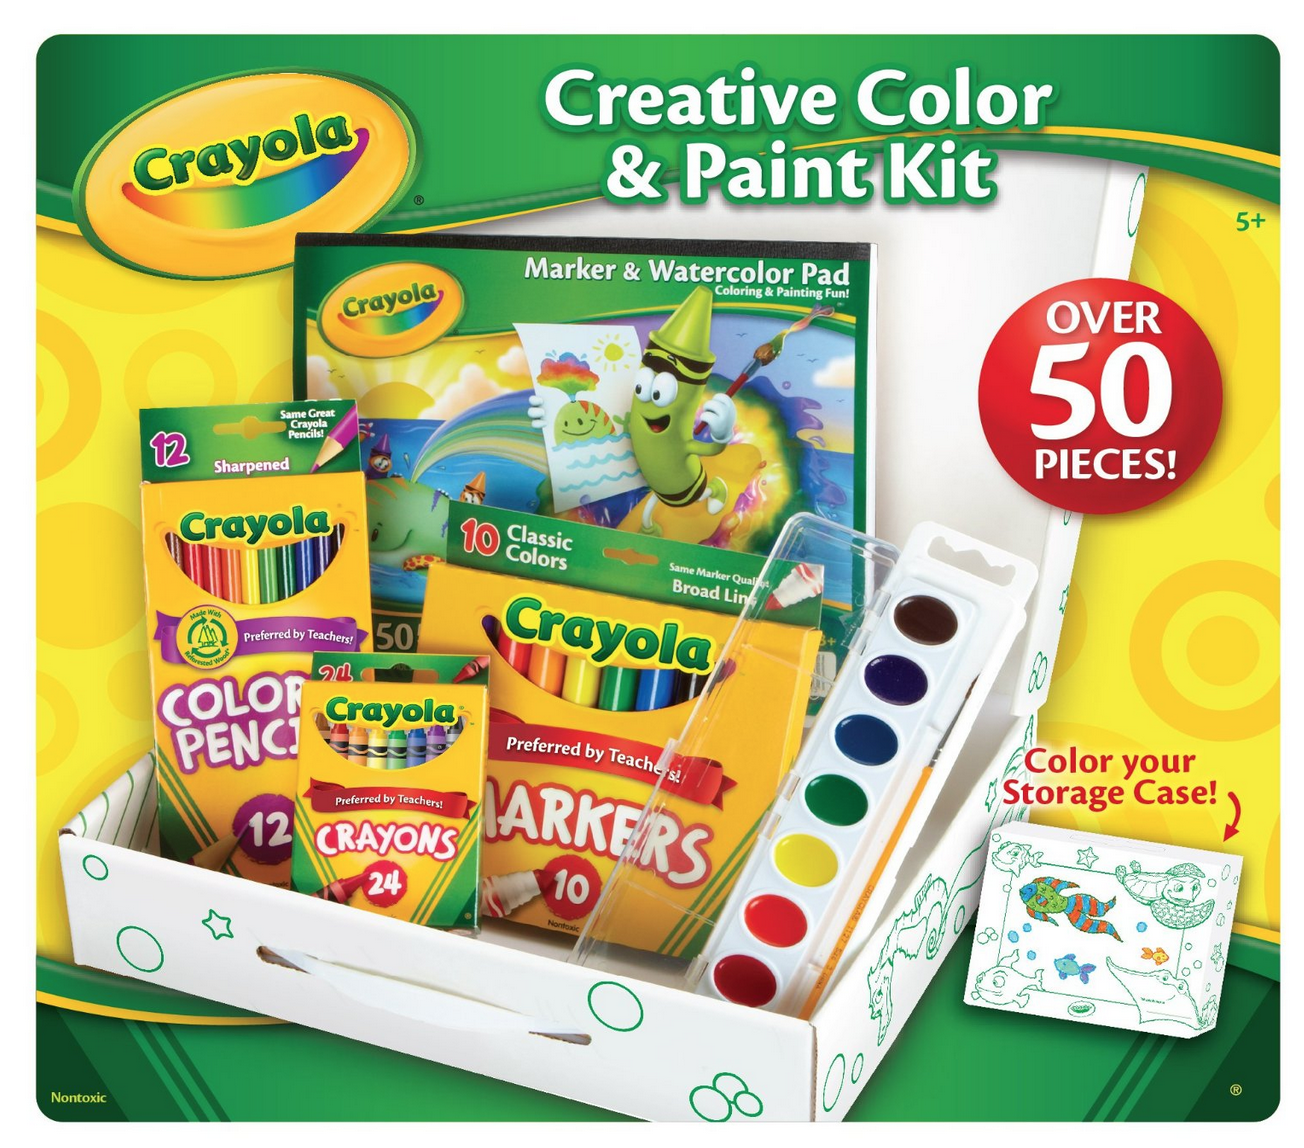 Today Only 40% Off Crayola Products! Prices Start at Just $4.19!